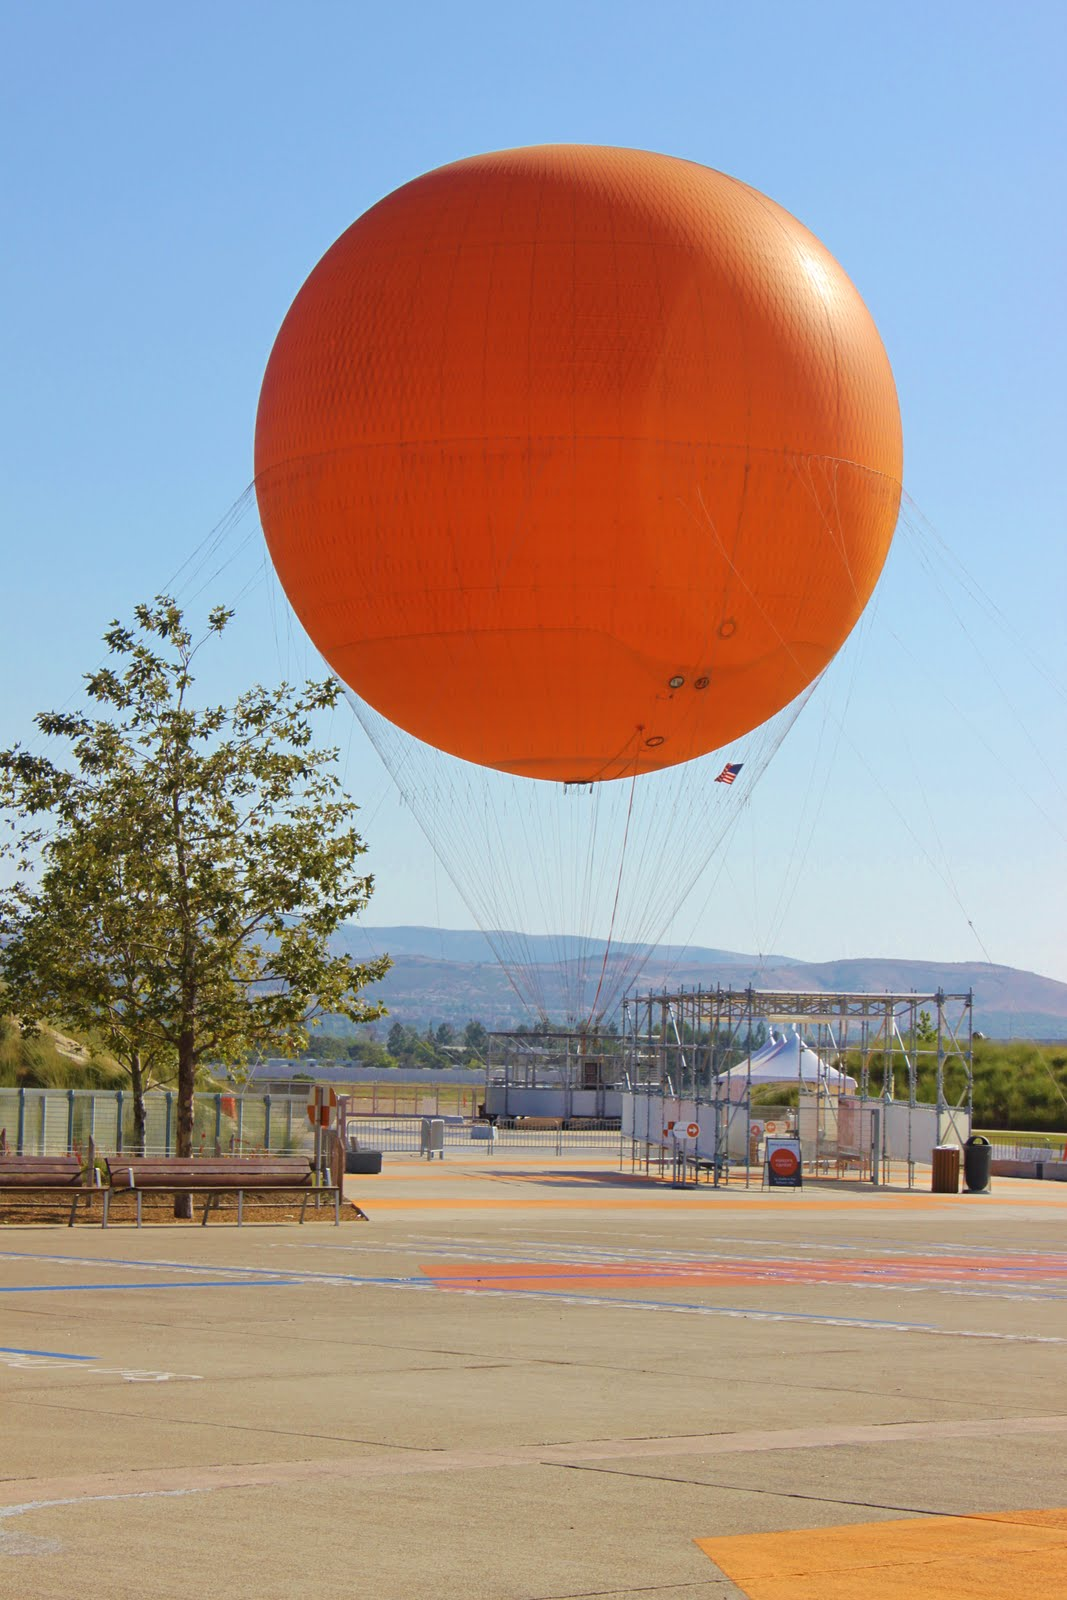 The Great Park Balloon - 361 Photos & 189 Reviews - Hot ...